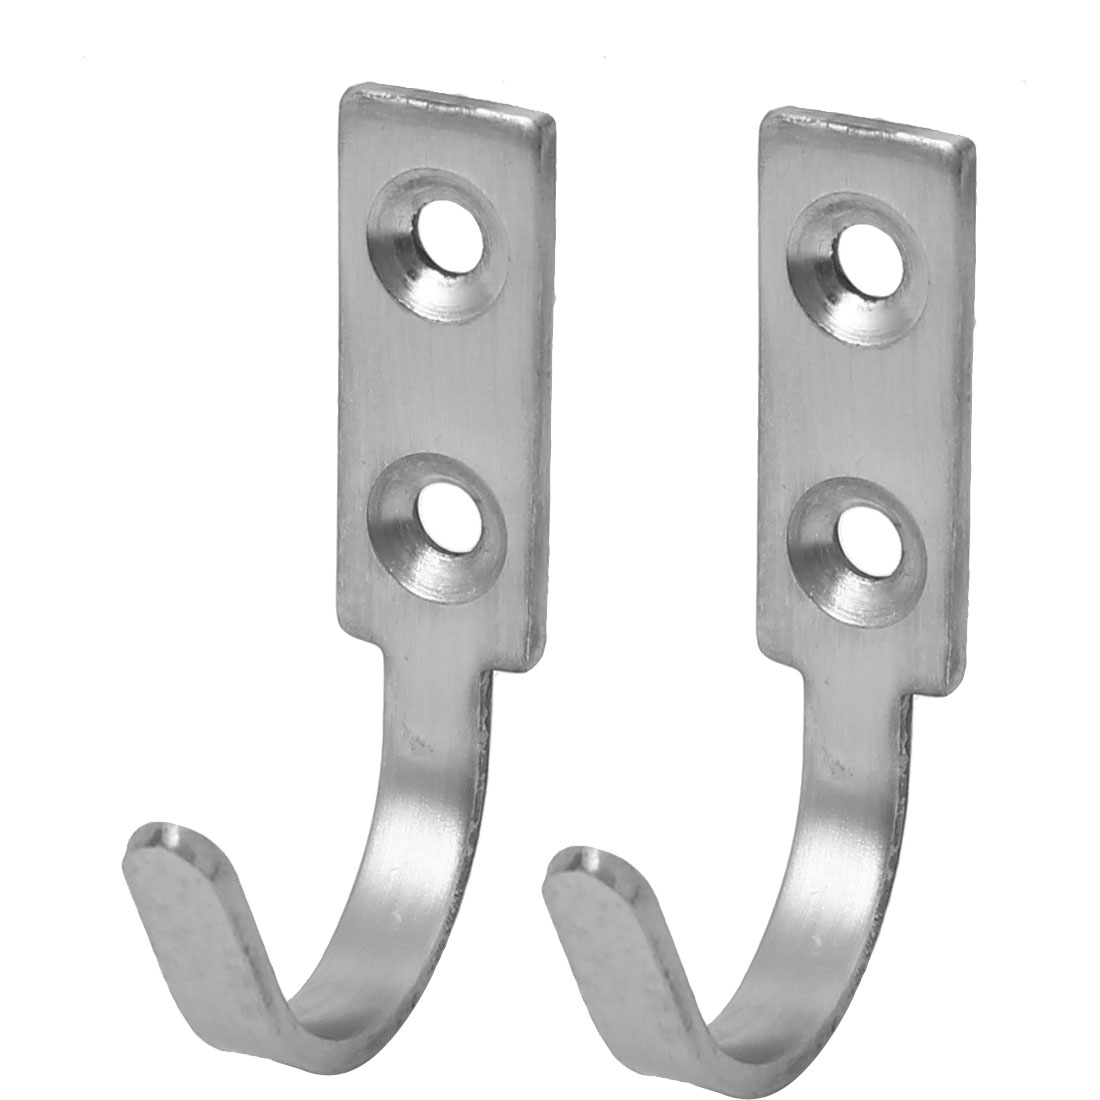 Door Wall Mounted Single Hook Clothes Towel Hanger Holder 60mm Length 2pcs